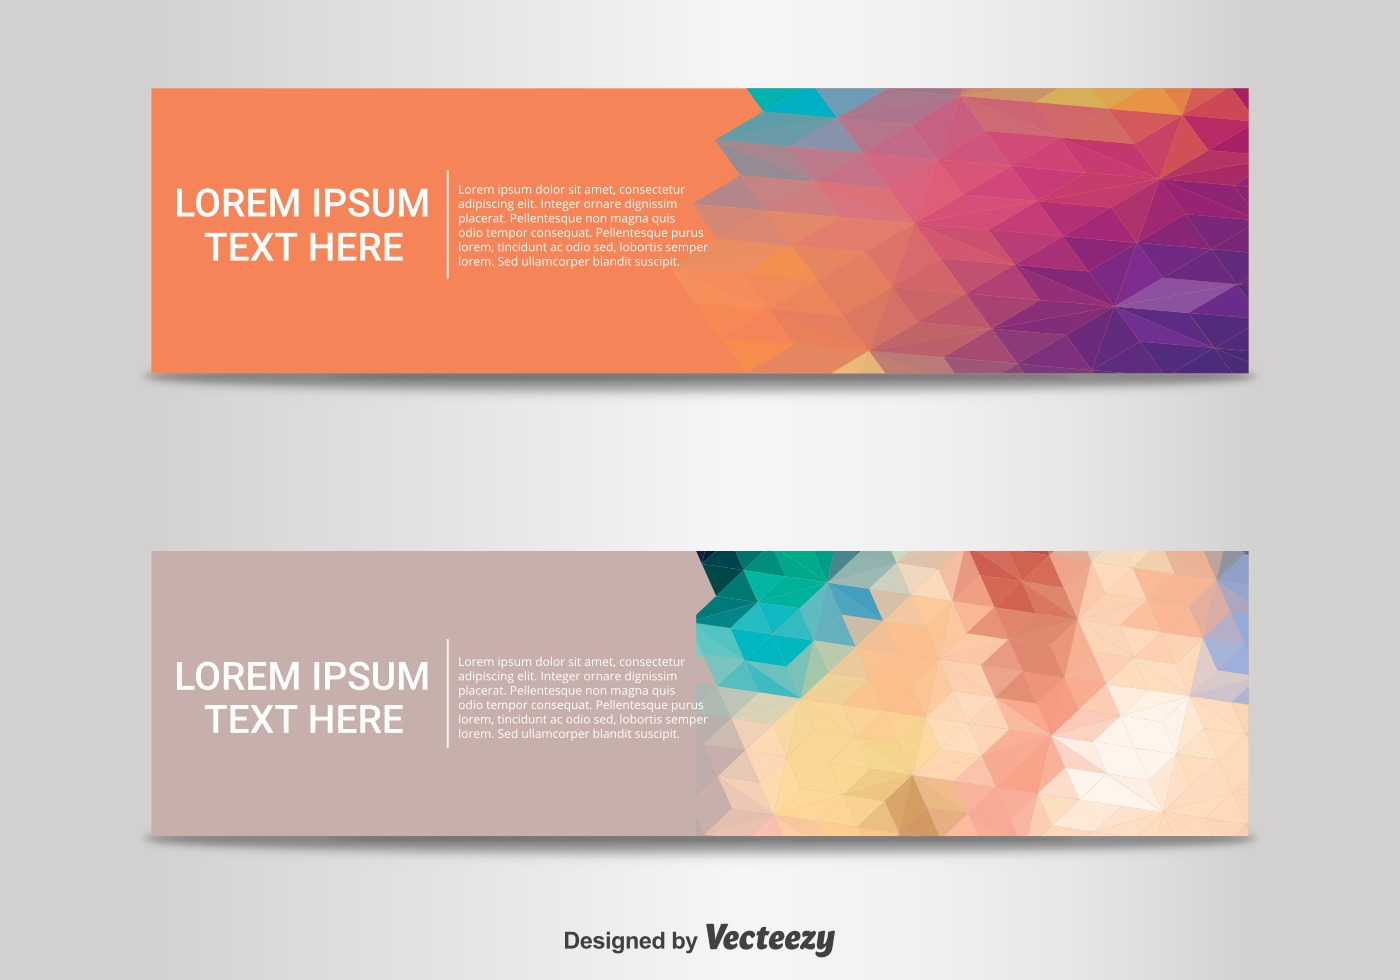 Abstract Banner Templates - Download Free Vector Art ...